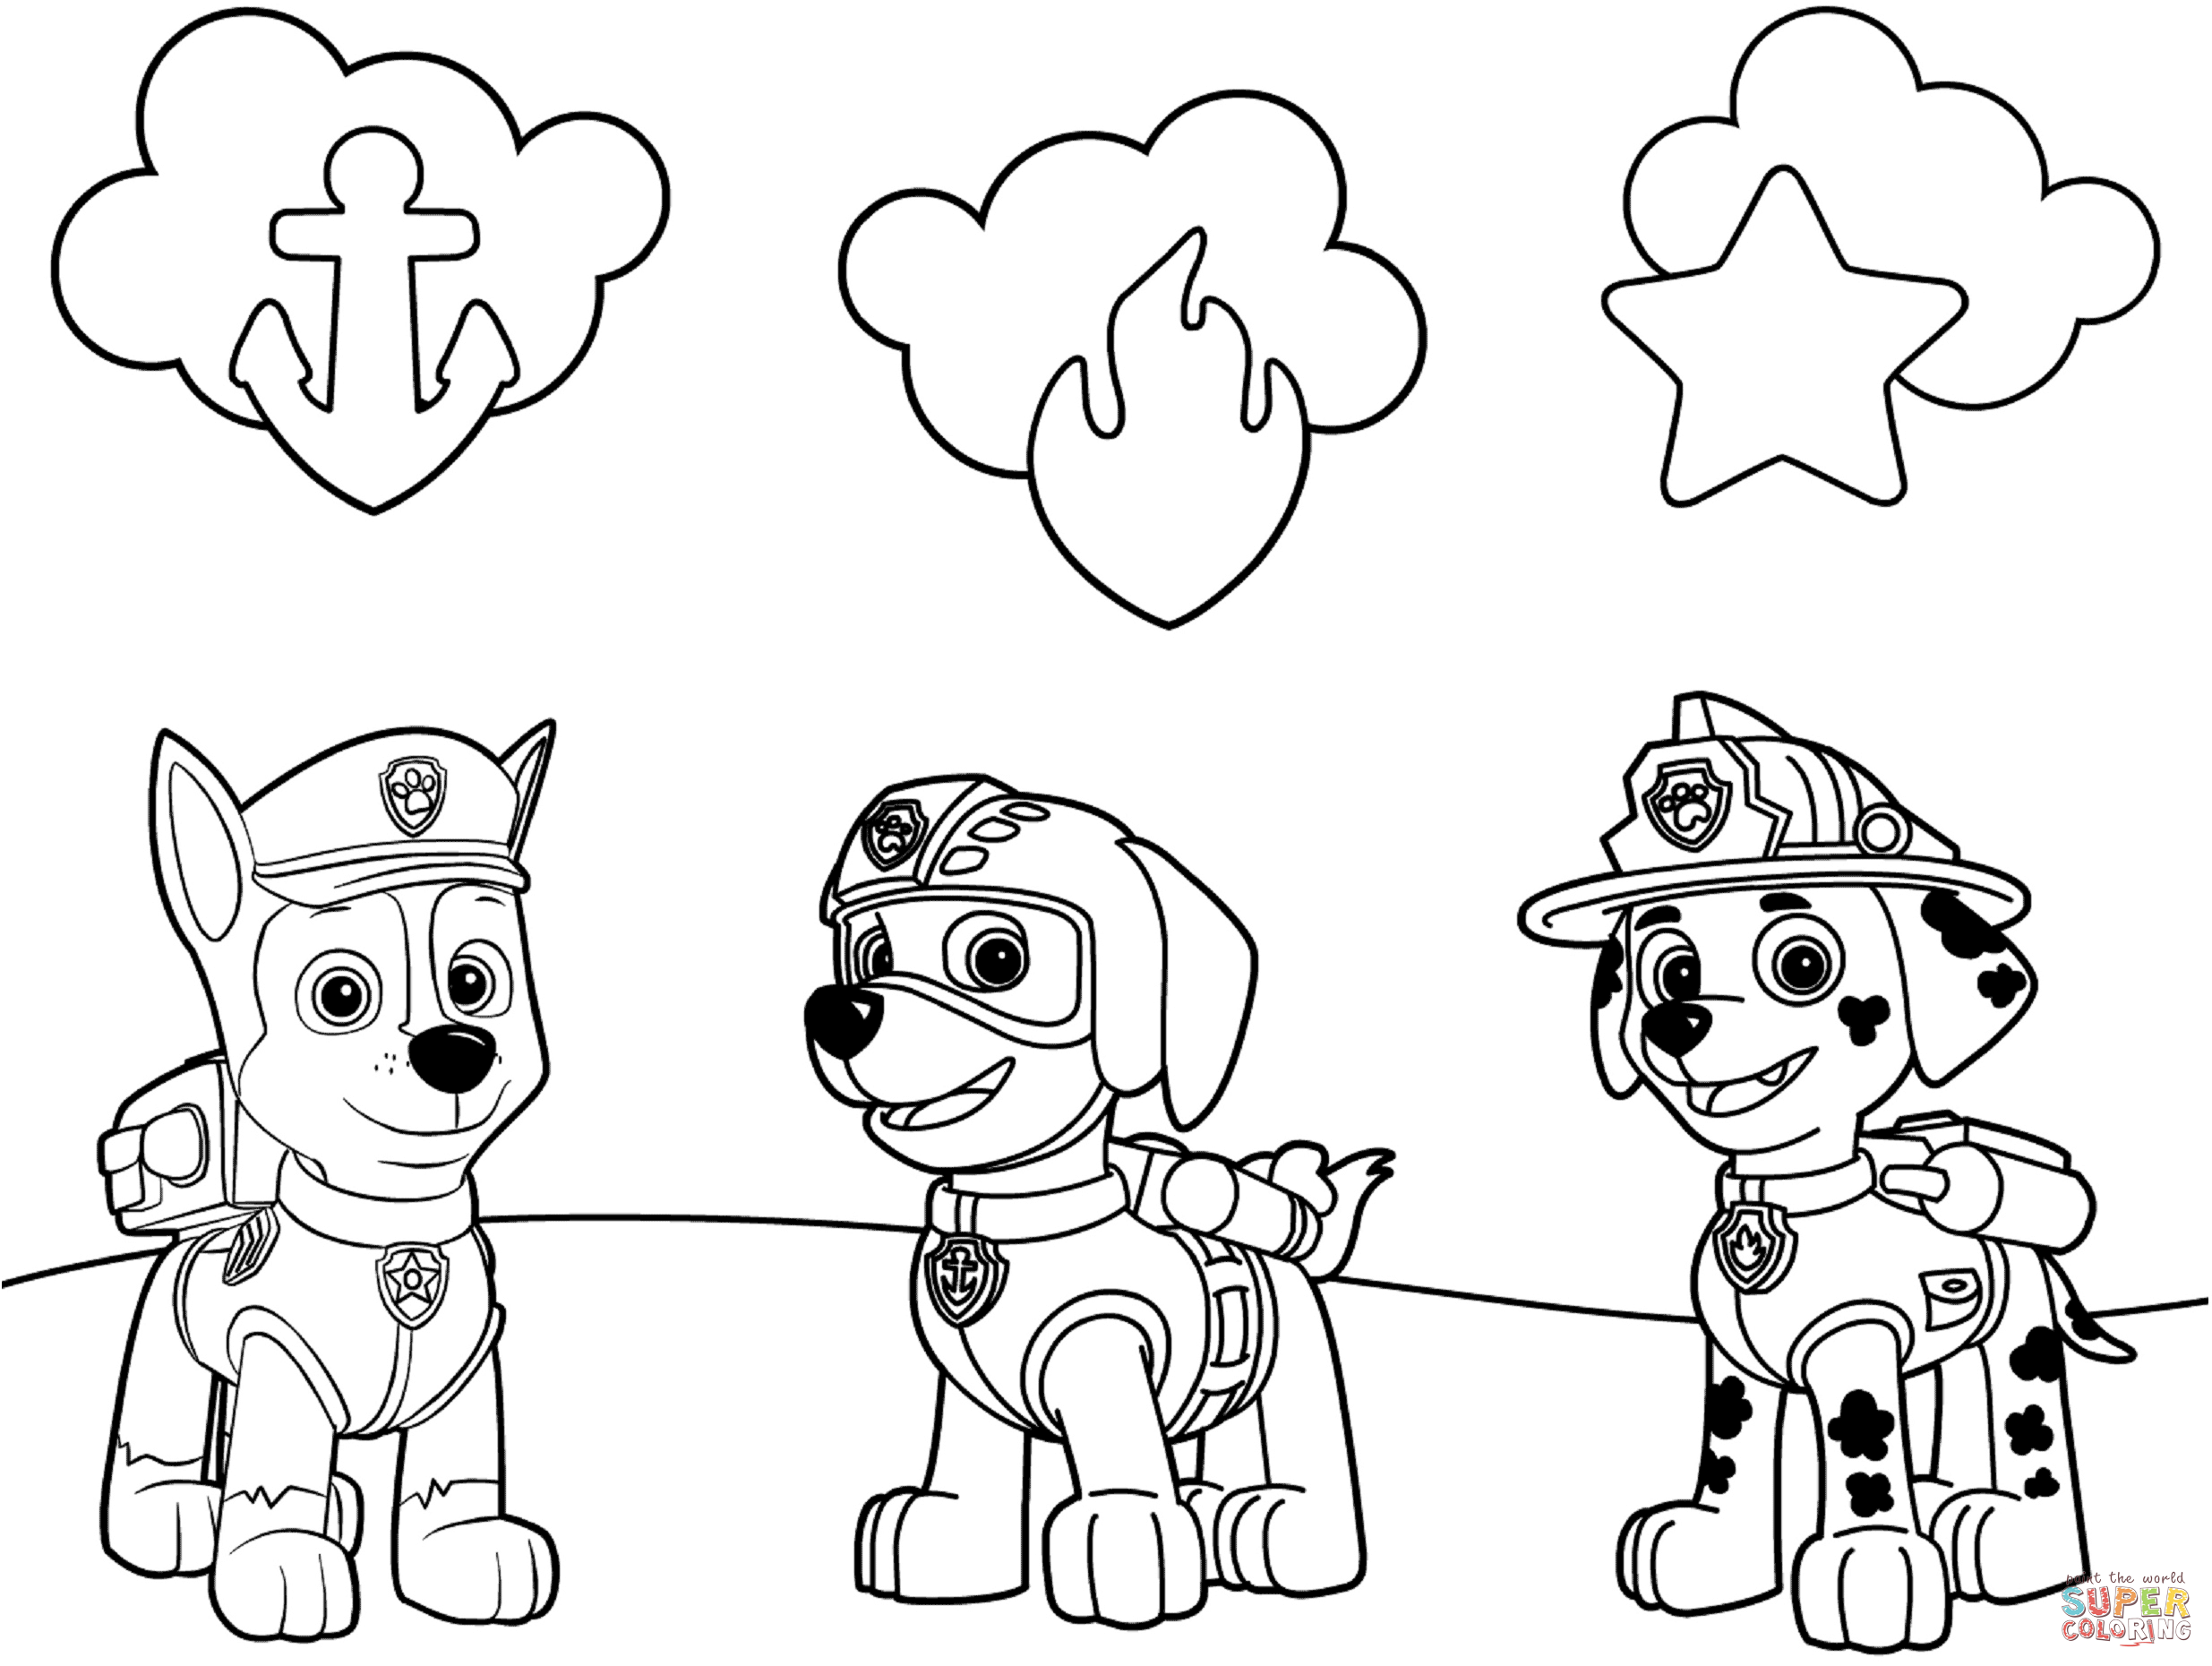 nick jr coloring pages to print - nick jr paw patrol printable coloring pages